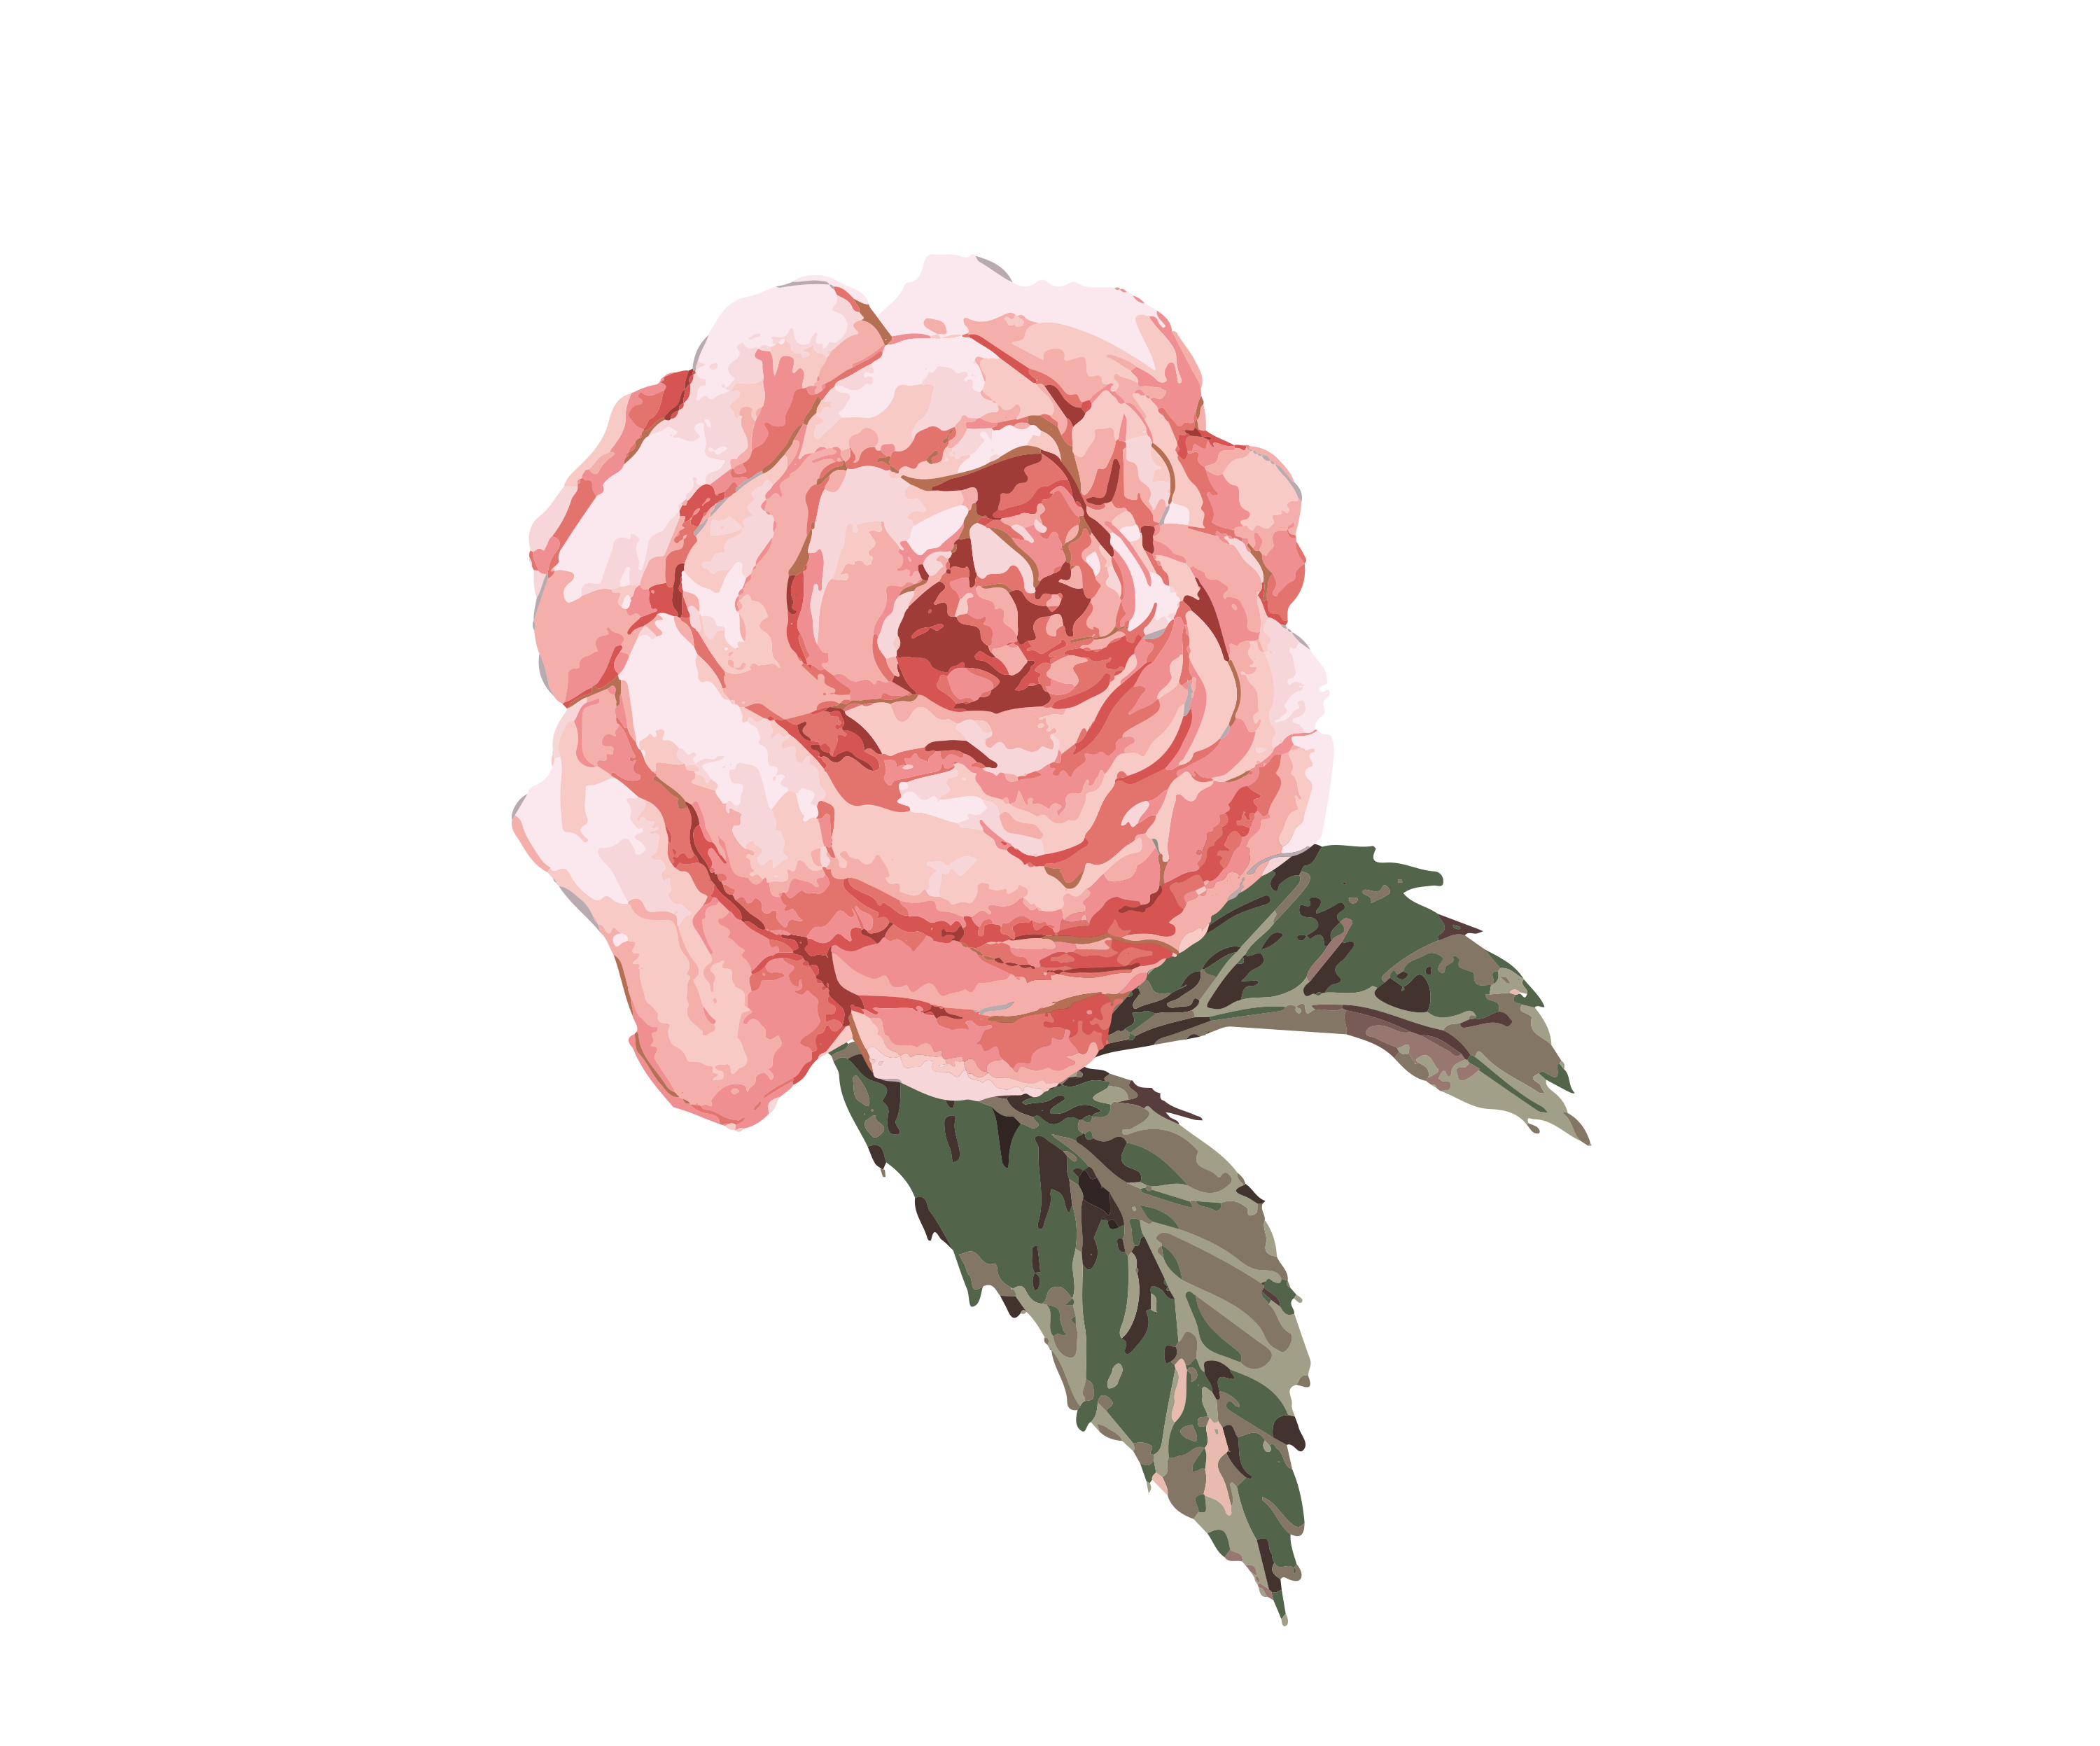 Watercolor rose png. Flower painting clip art